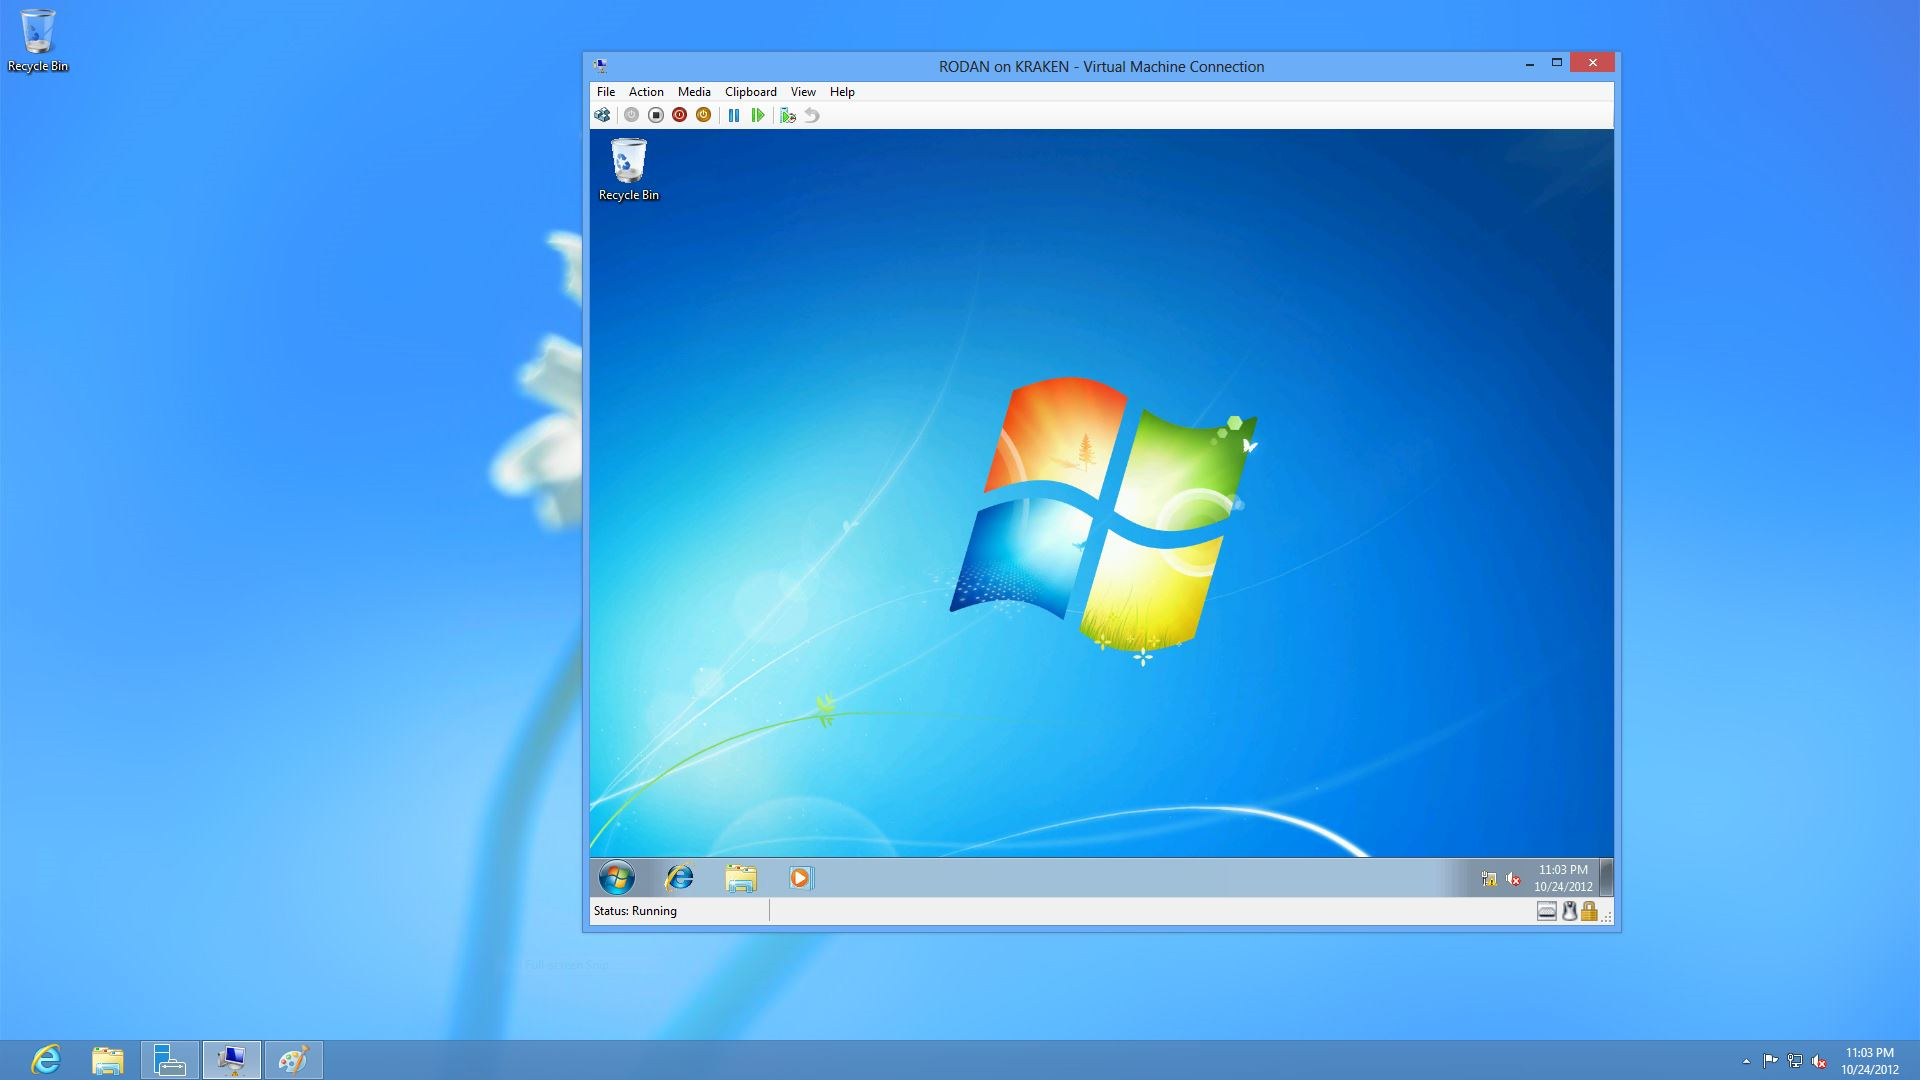 Hyper-V is now integrated into Windows 8. Both the Hyper-V Manager and Virtual Machine Connection are included, and even if you can't run a virtual machine on your older desktop, you can connect to VMs running on other desktops or servers.